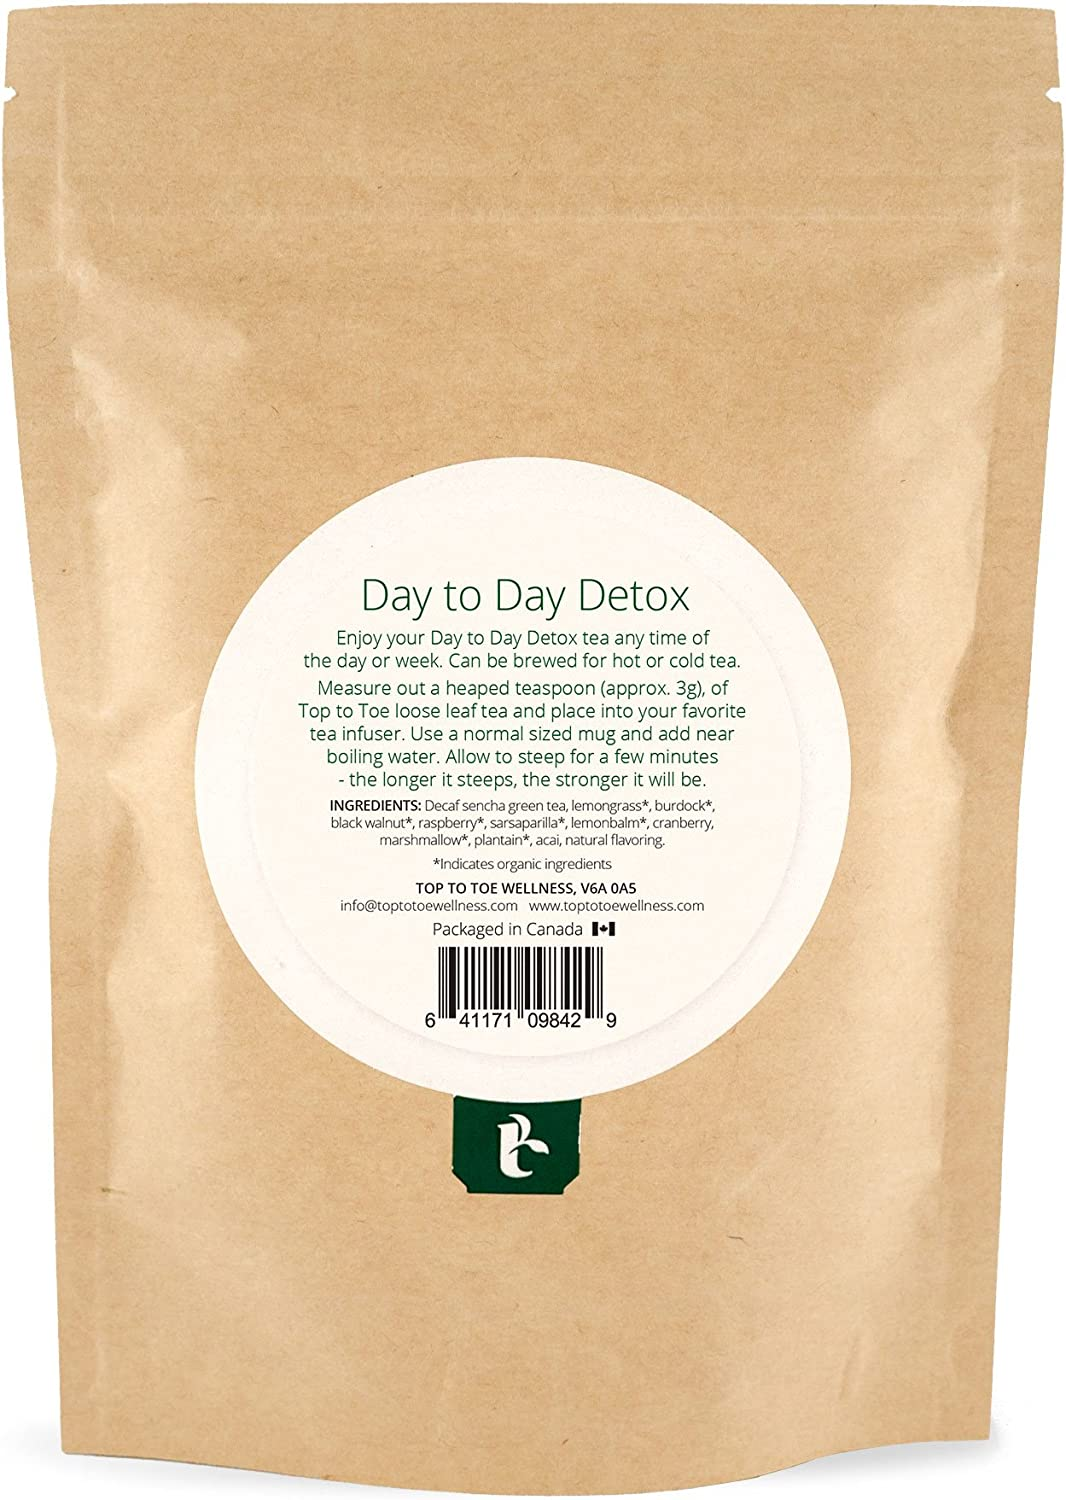 Top to Toe Wellness – Day to Day Detox Tea Best 100 Natural and Organic Weight Loss Tea Cleanses Digestive System, Promotes Slimming Reduces Bloating With Decaf Sencha Loose Leaf 84 grams